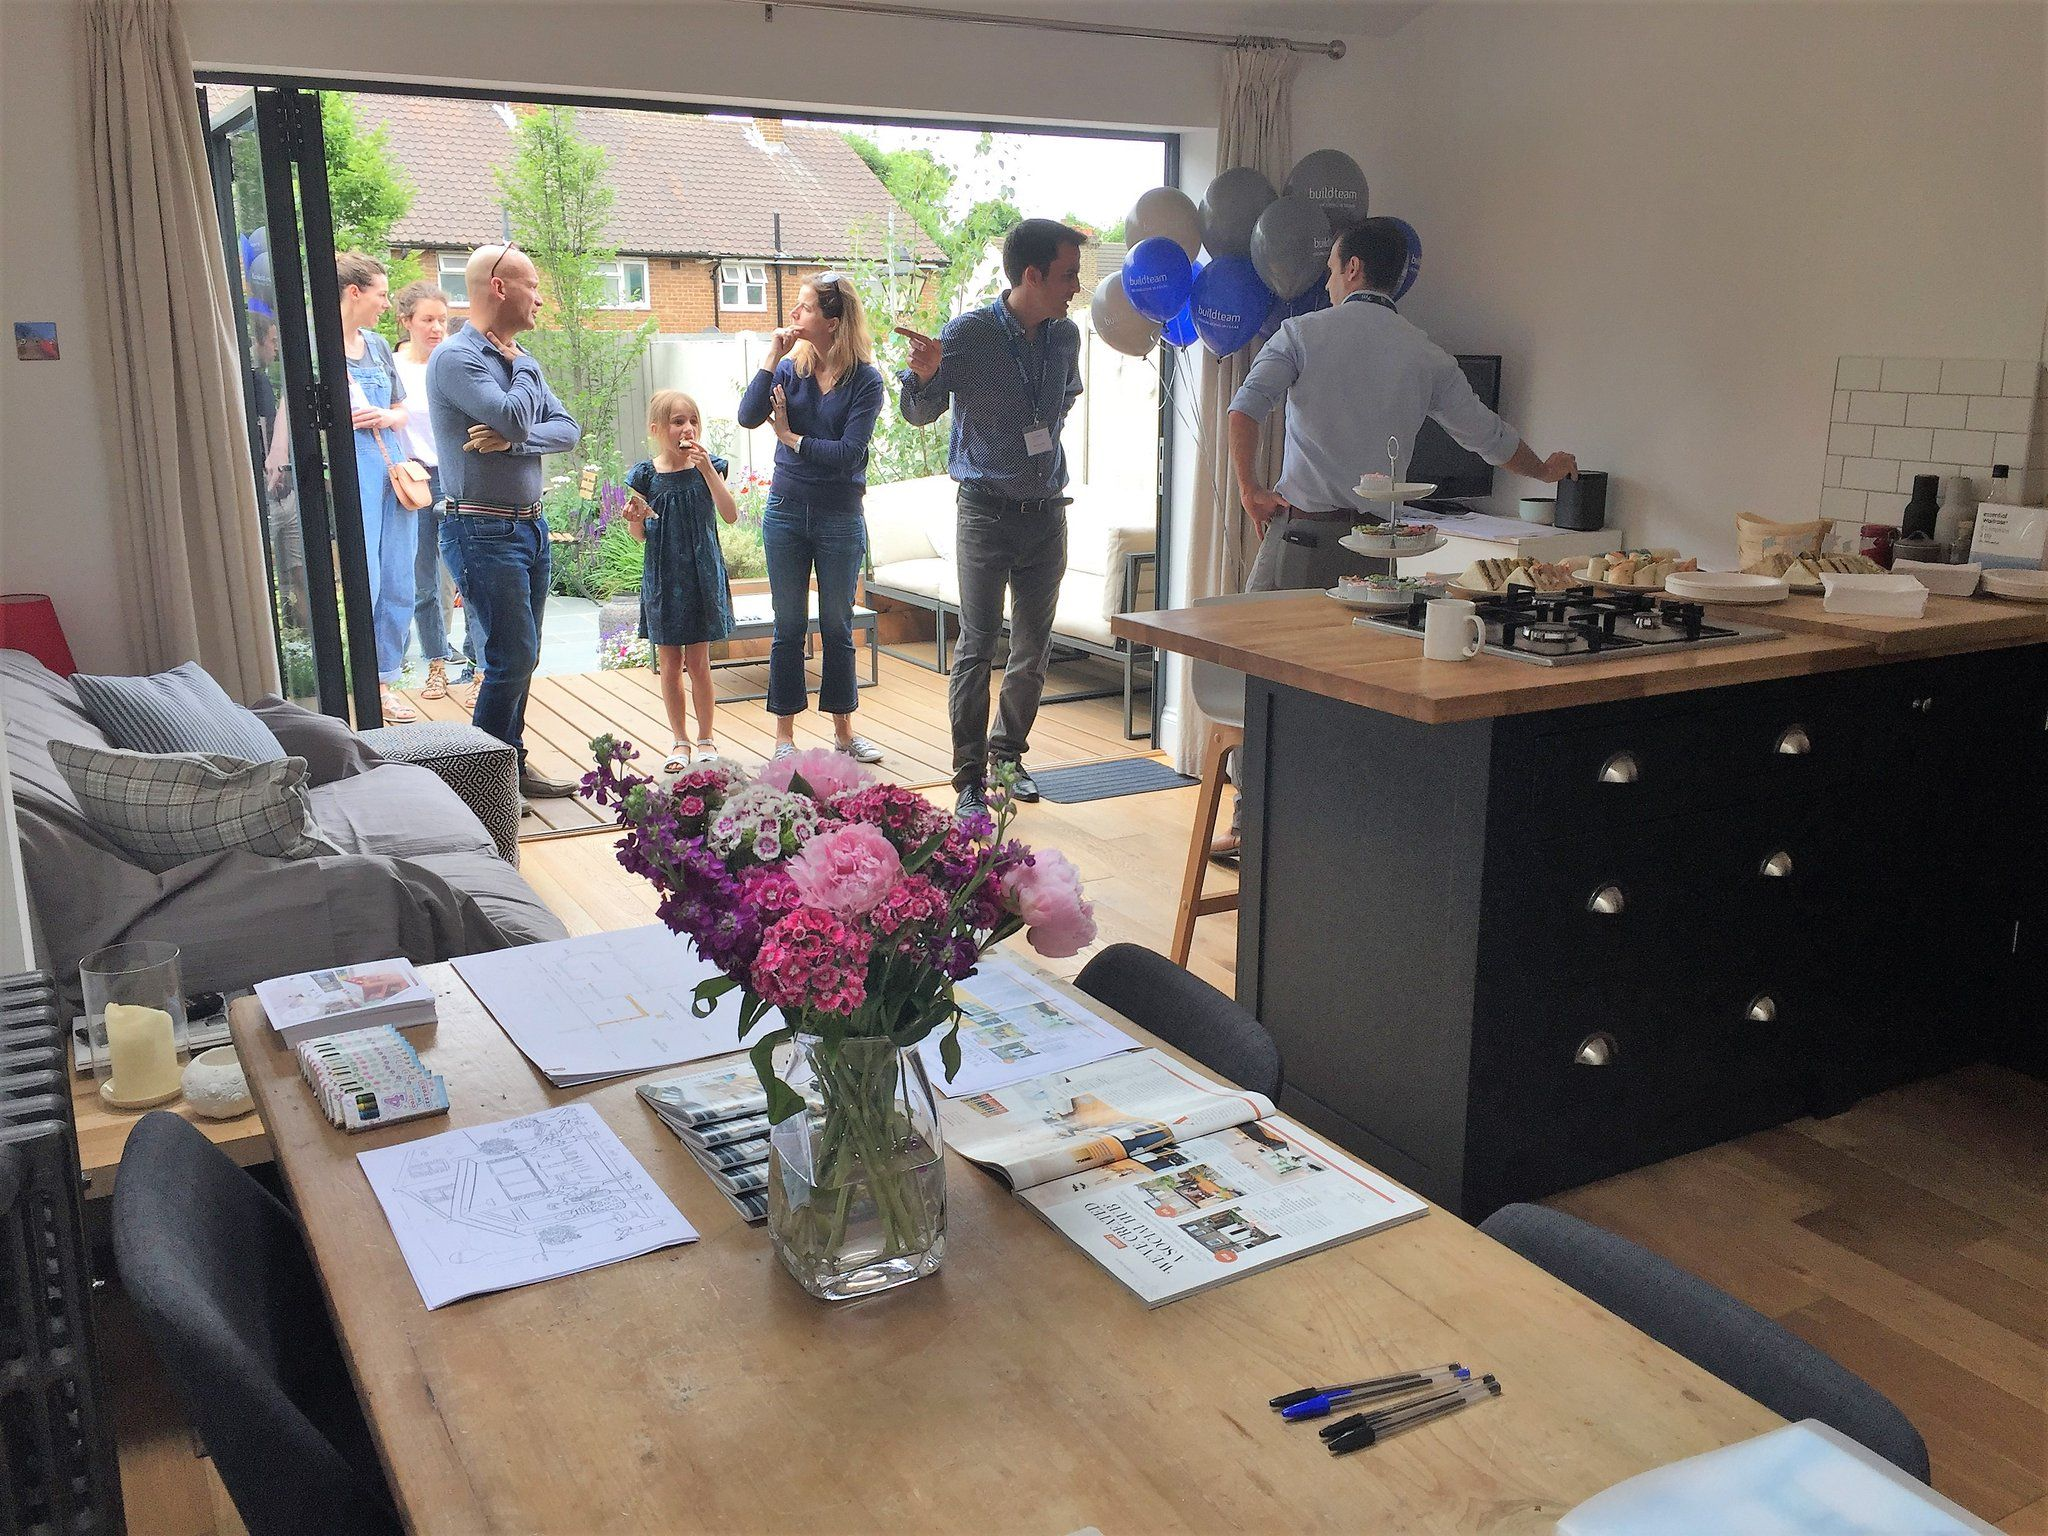 SE13 Summer House Tour